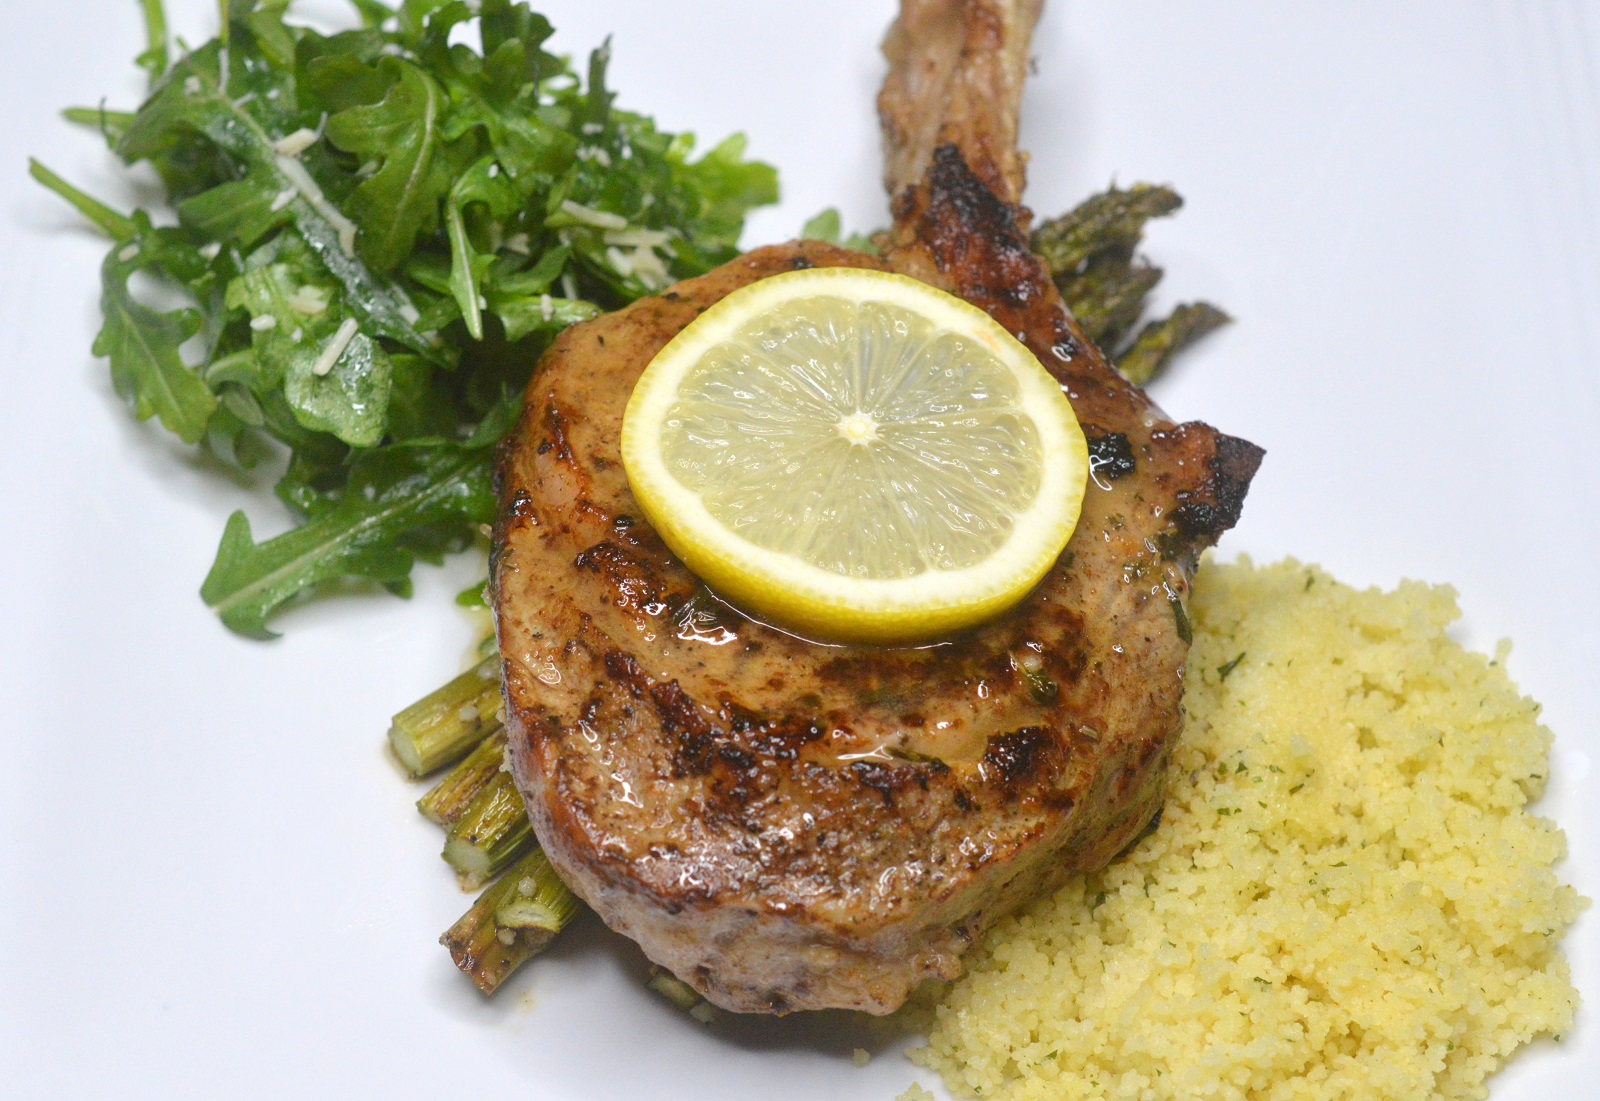 Pan Fried Veal Chops with White Wine Sauce Recipe